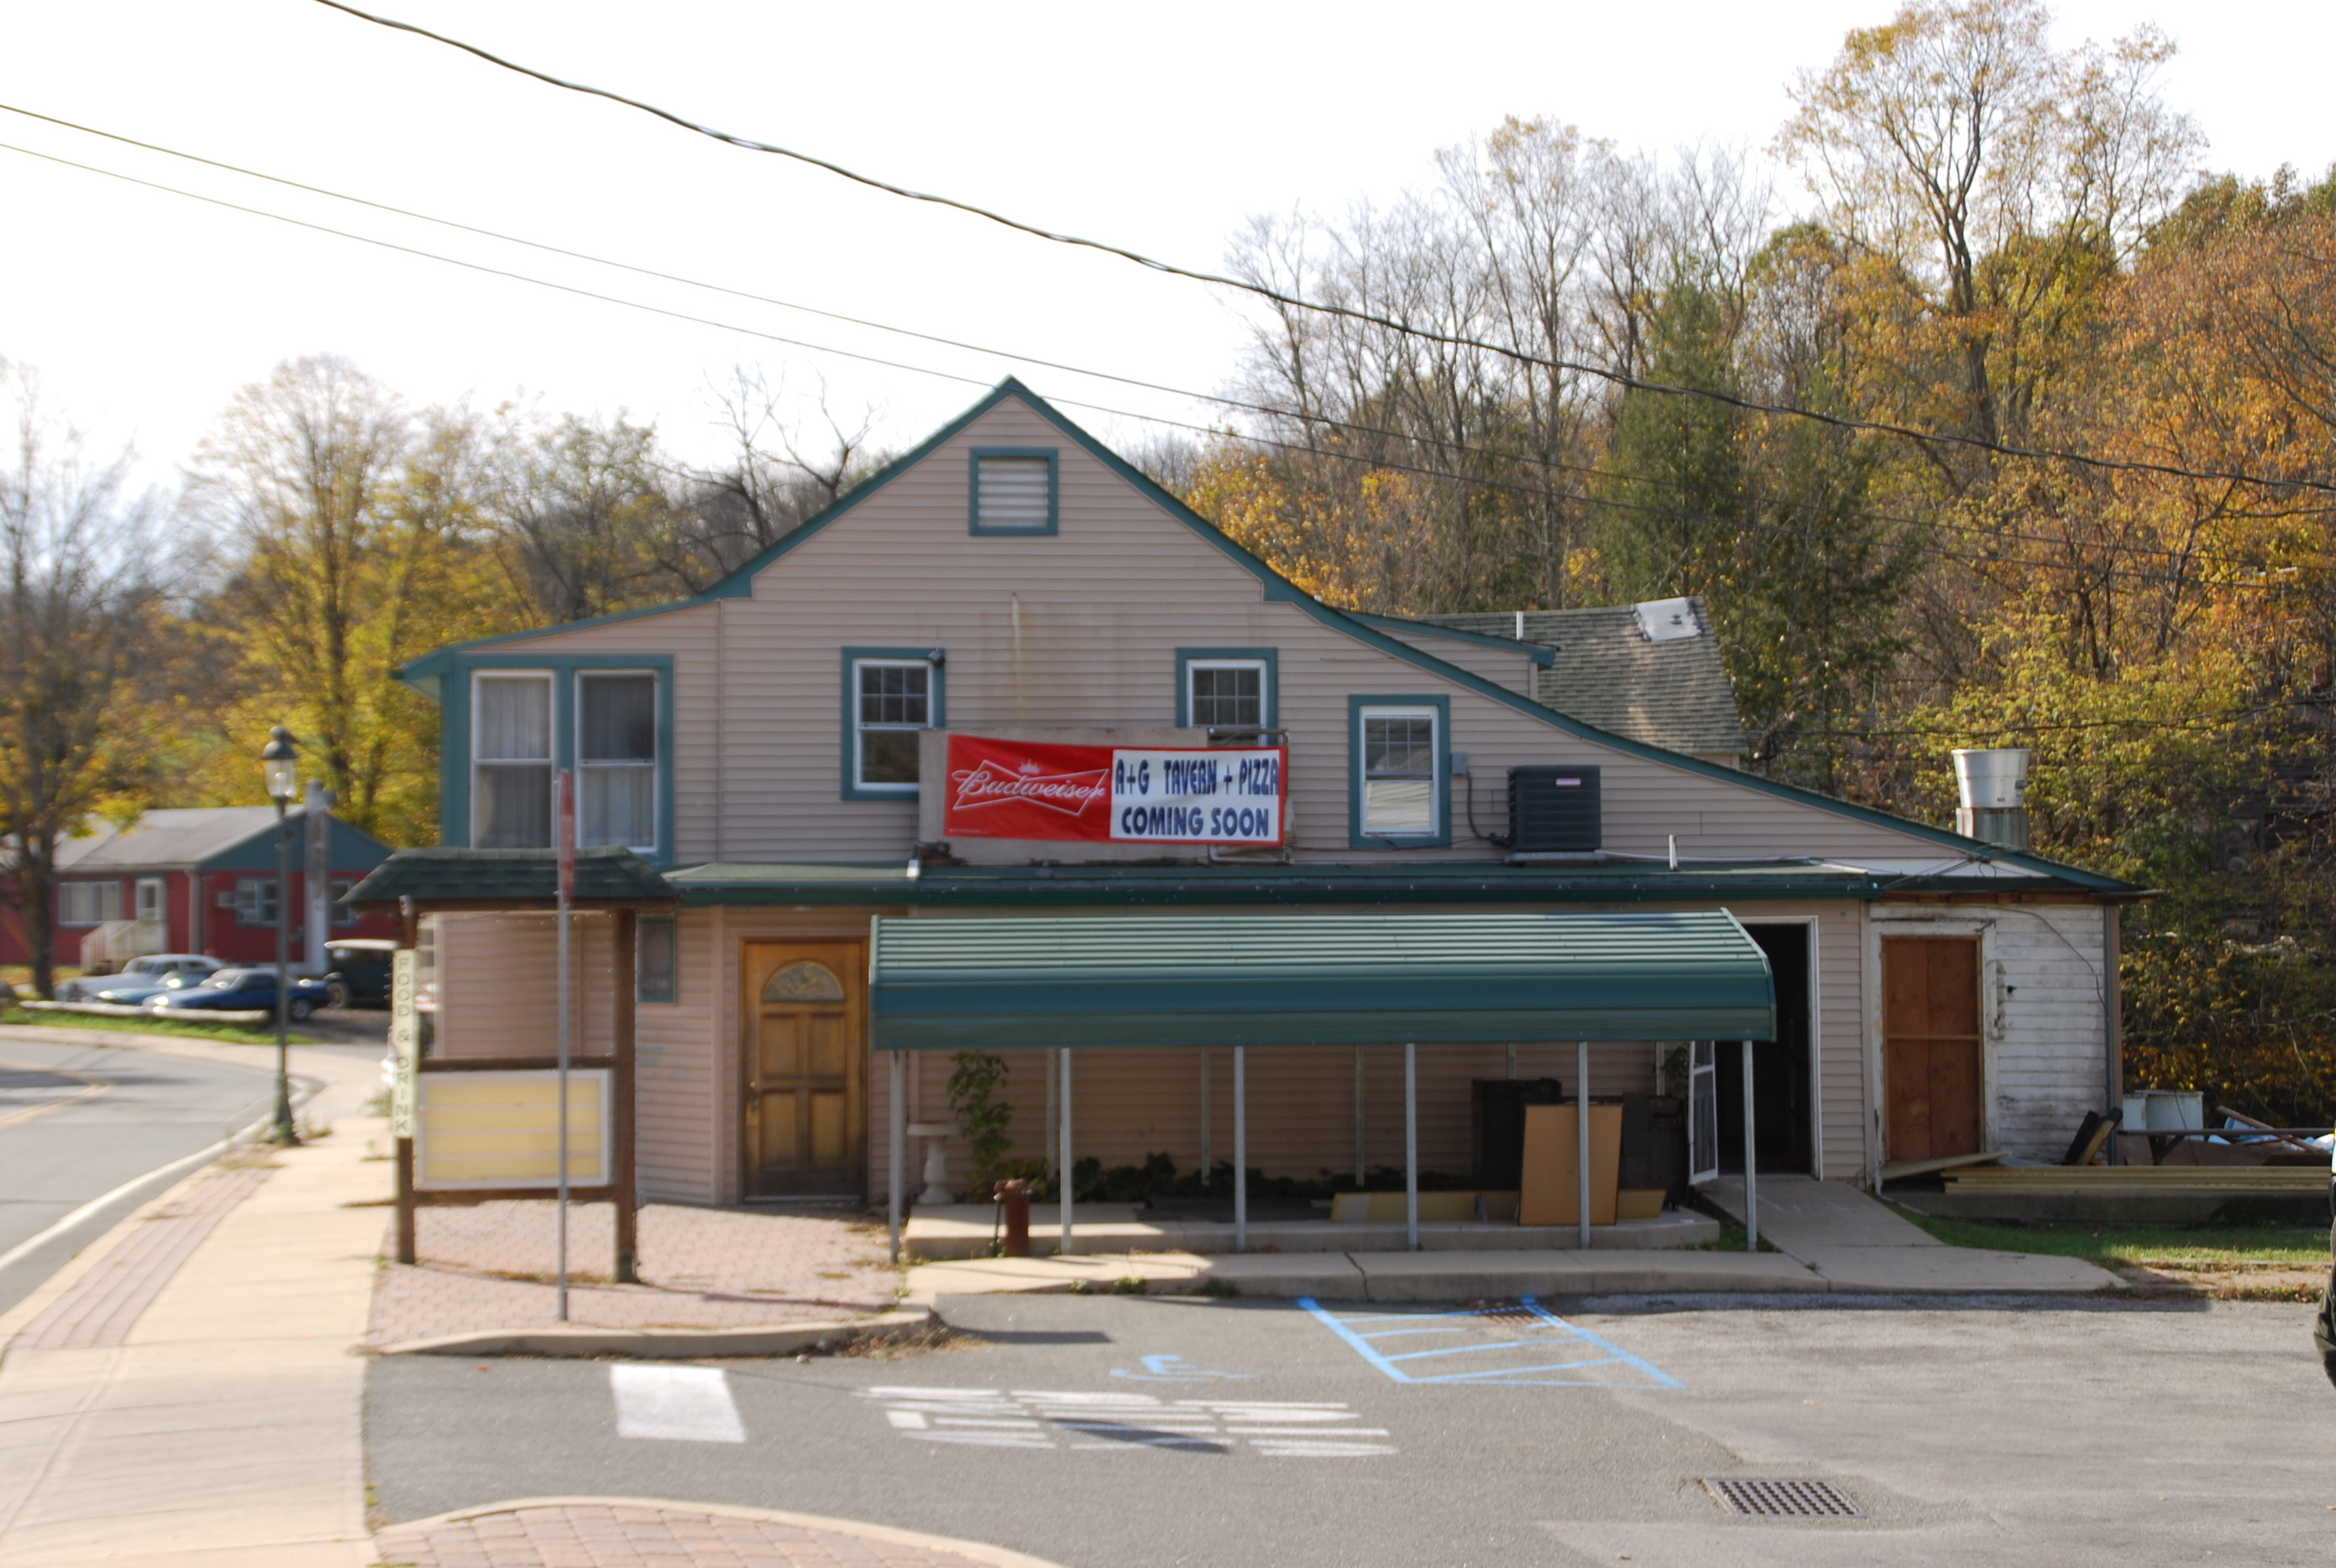 New jersey sussex county layton - The Store Shares A Parking Lot With The Post Office Building Credits By Jane Primerano